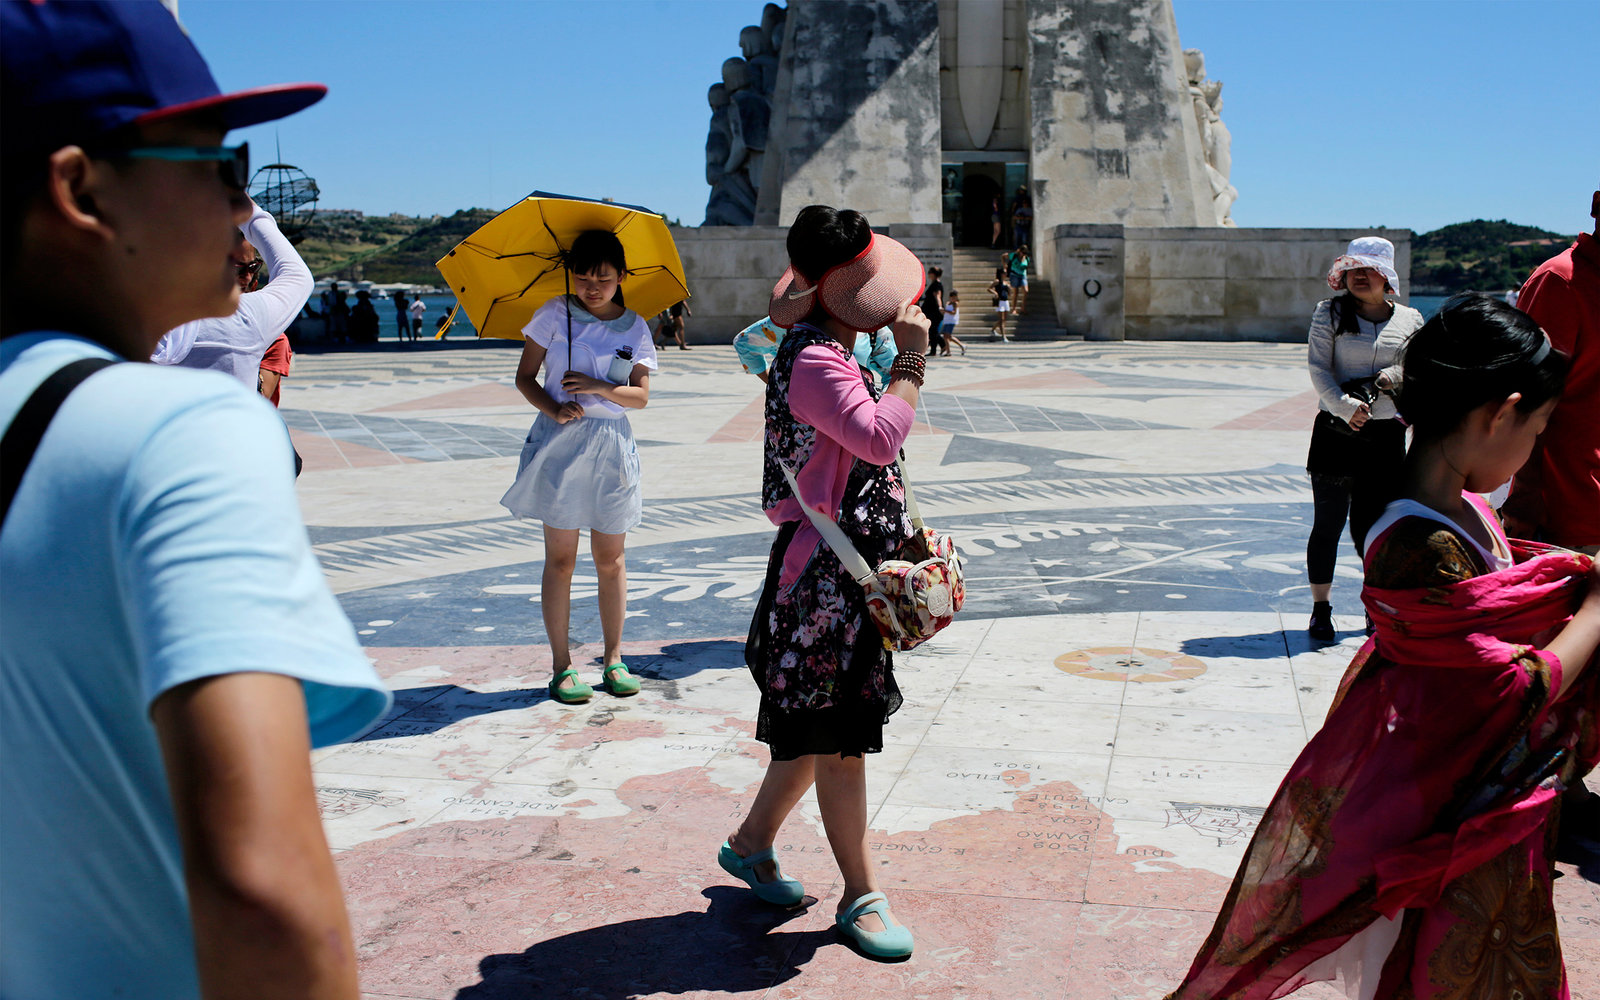 Chinese Tourists in Lisbon